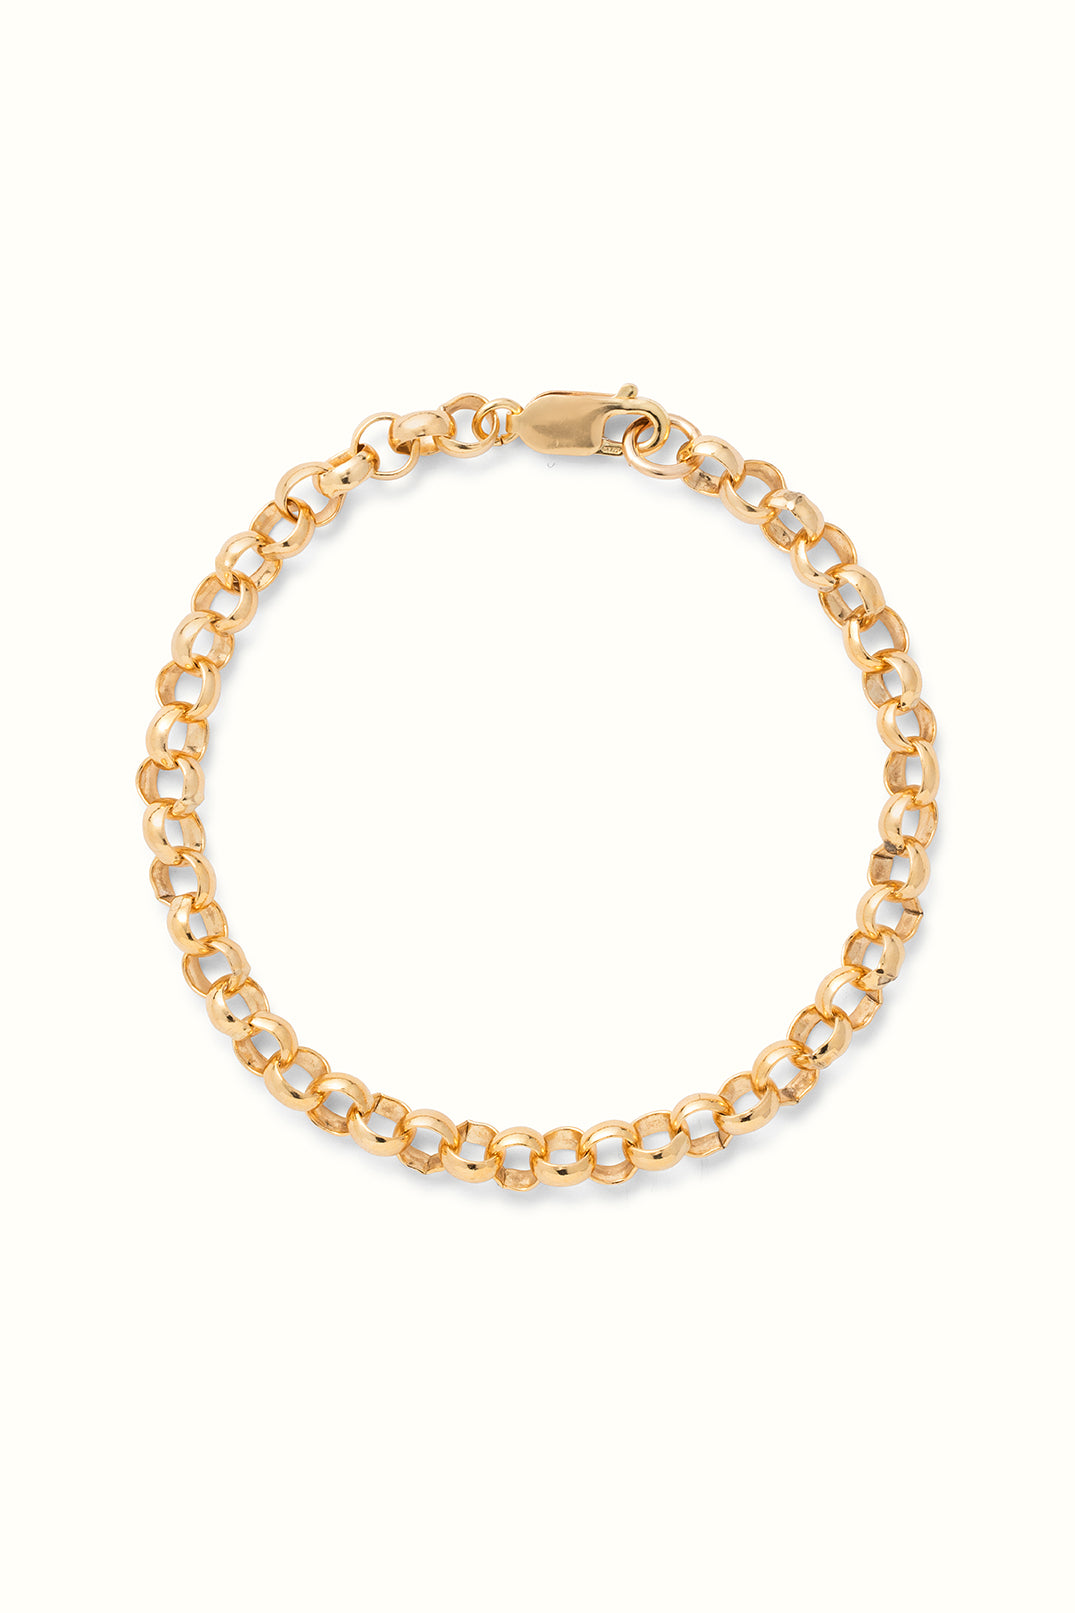 a chunky gold filled rolo chain bracelet lying on a white surface